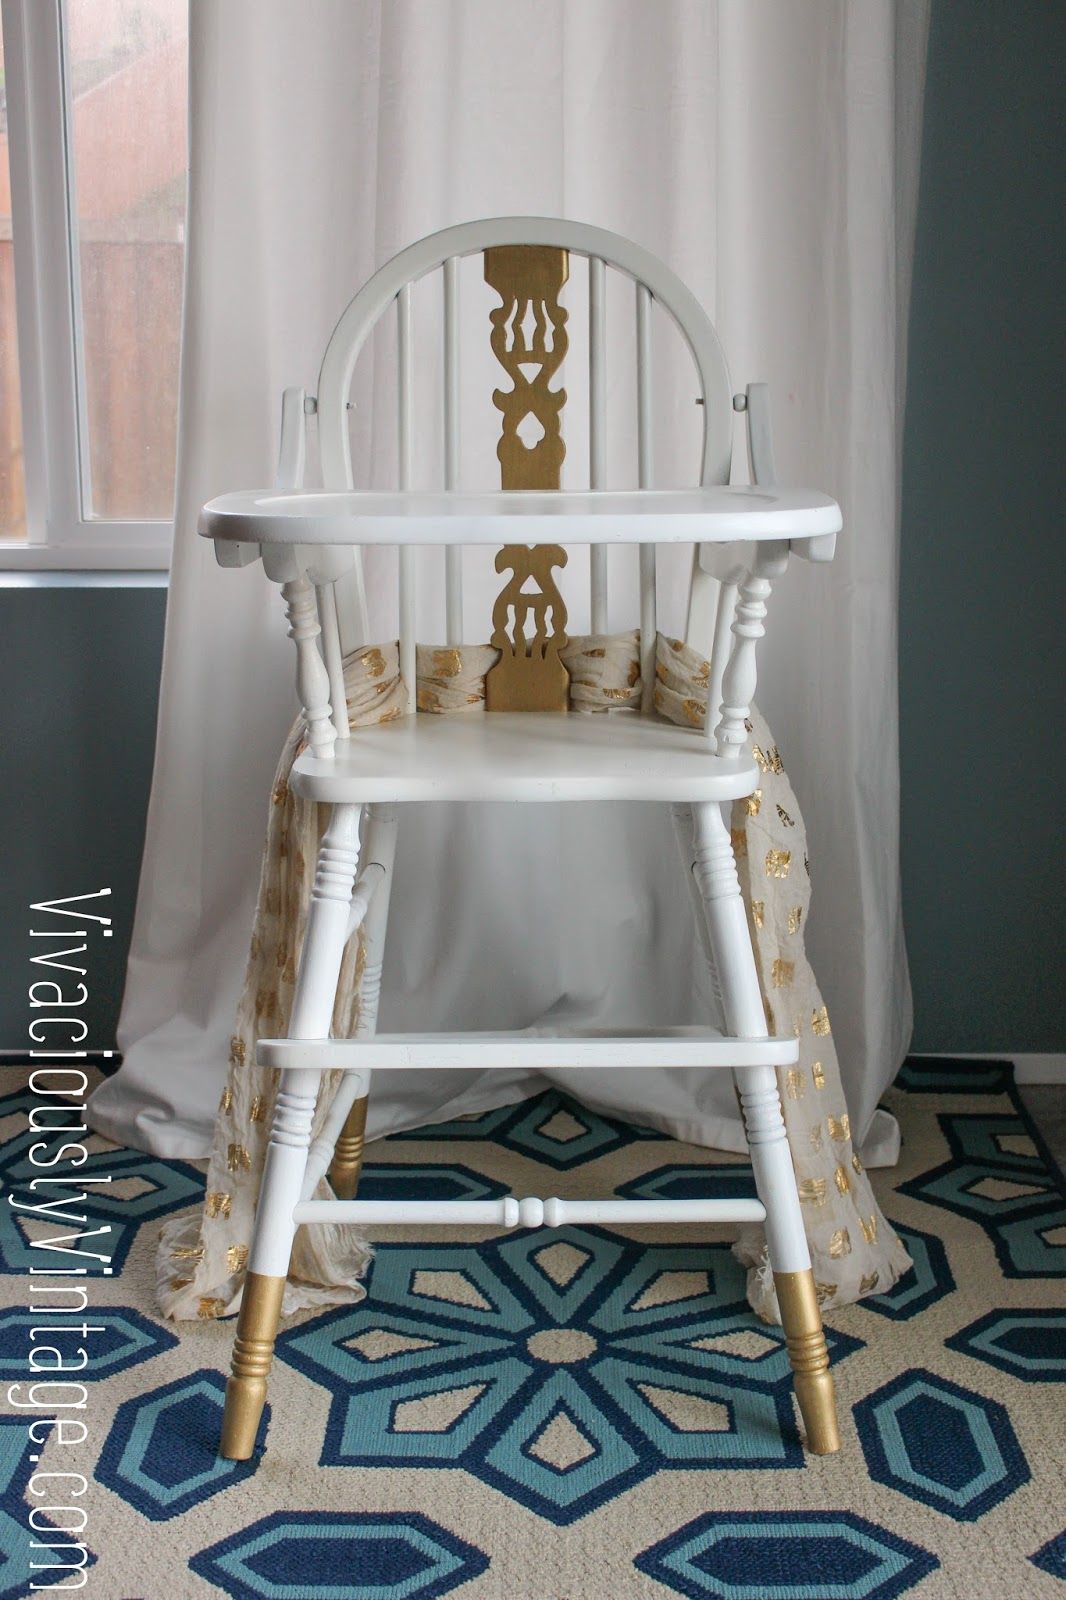 Painted wooden high chair - Gold And White Vintage Painted Wooden High Chair